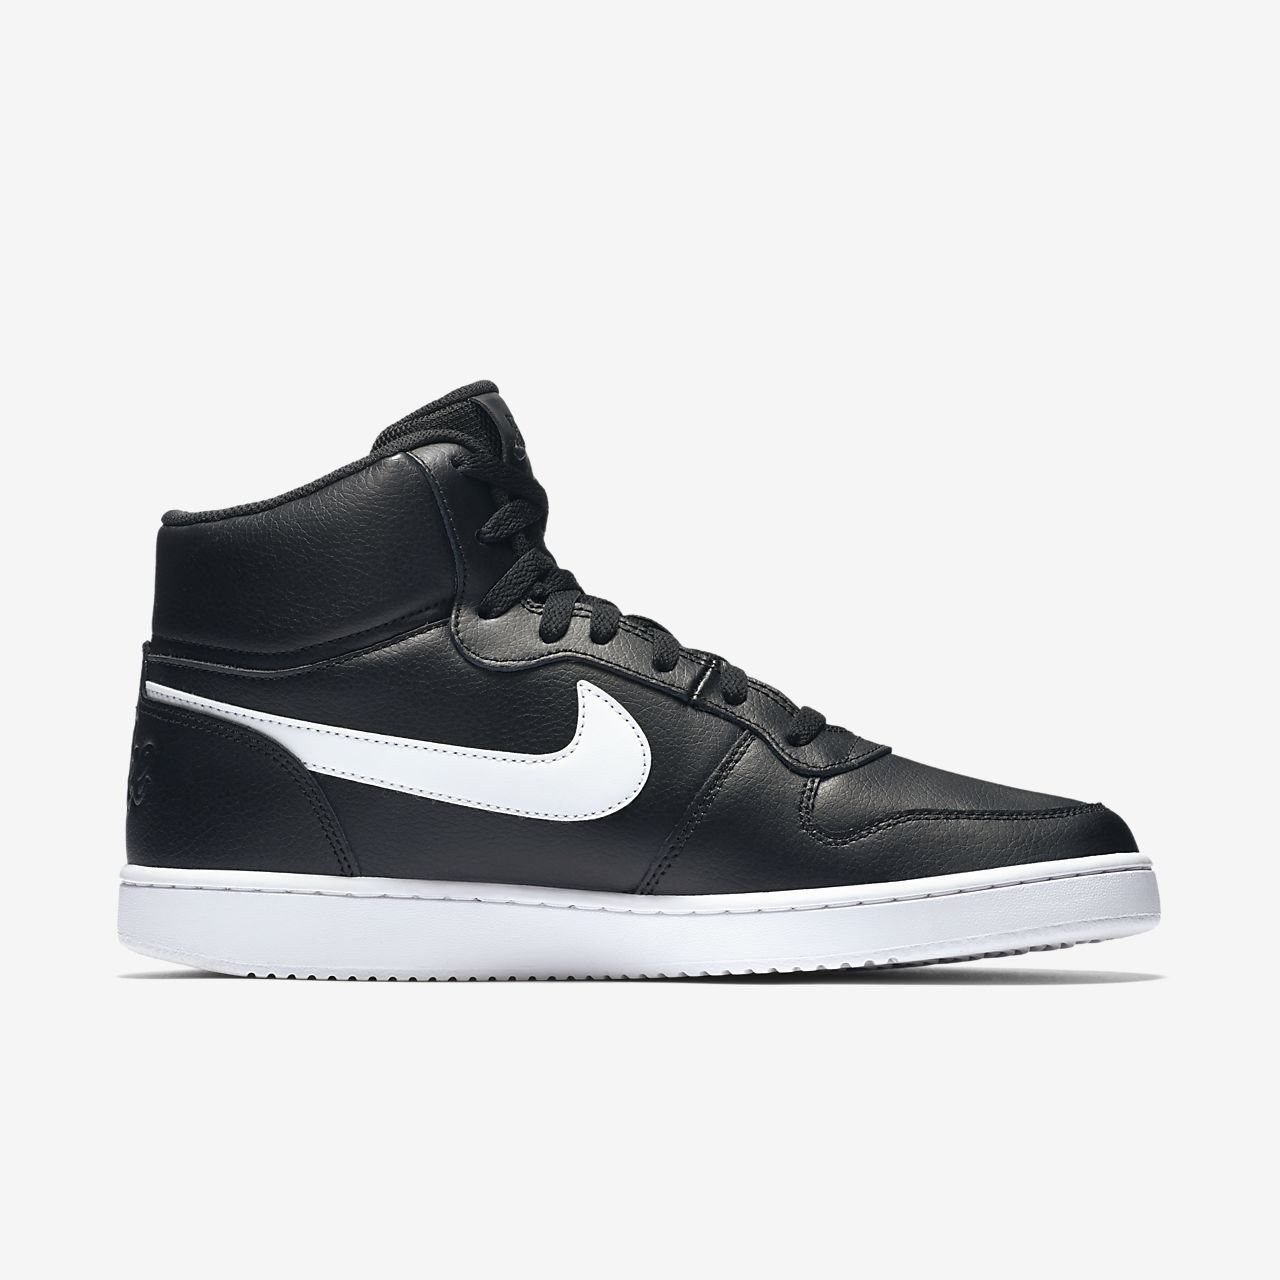 official photos 5370f 68058 Chaussure pour Homme. Nike Ebernon Mid